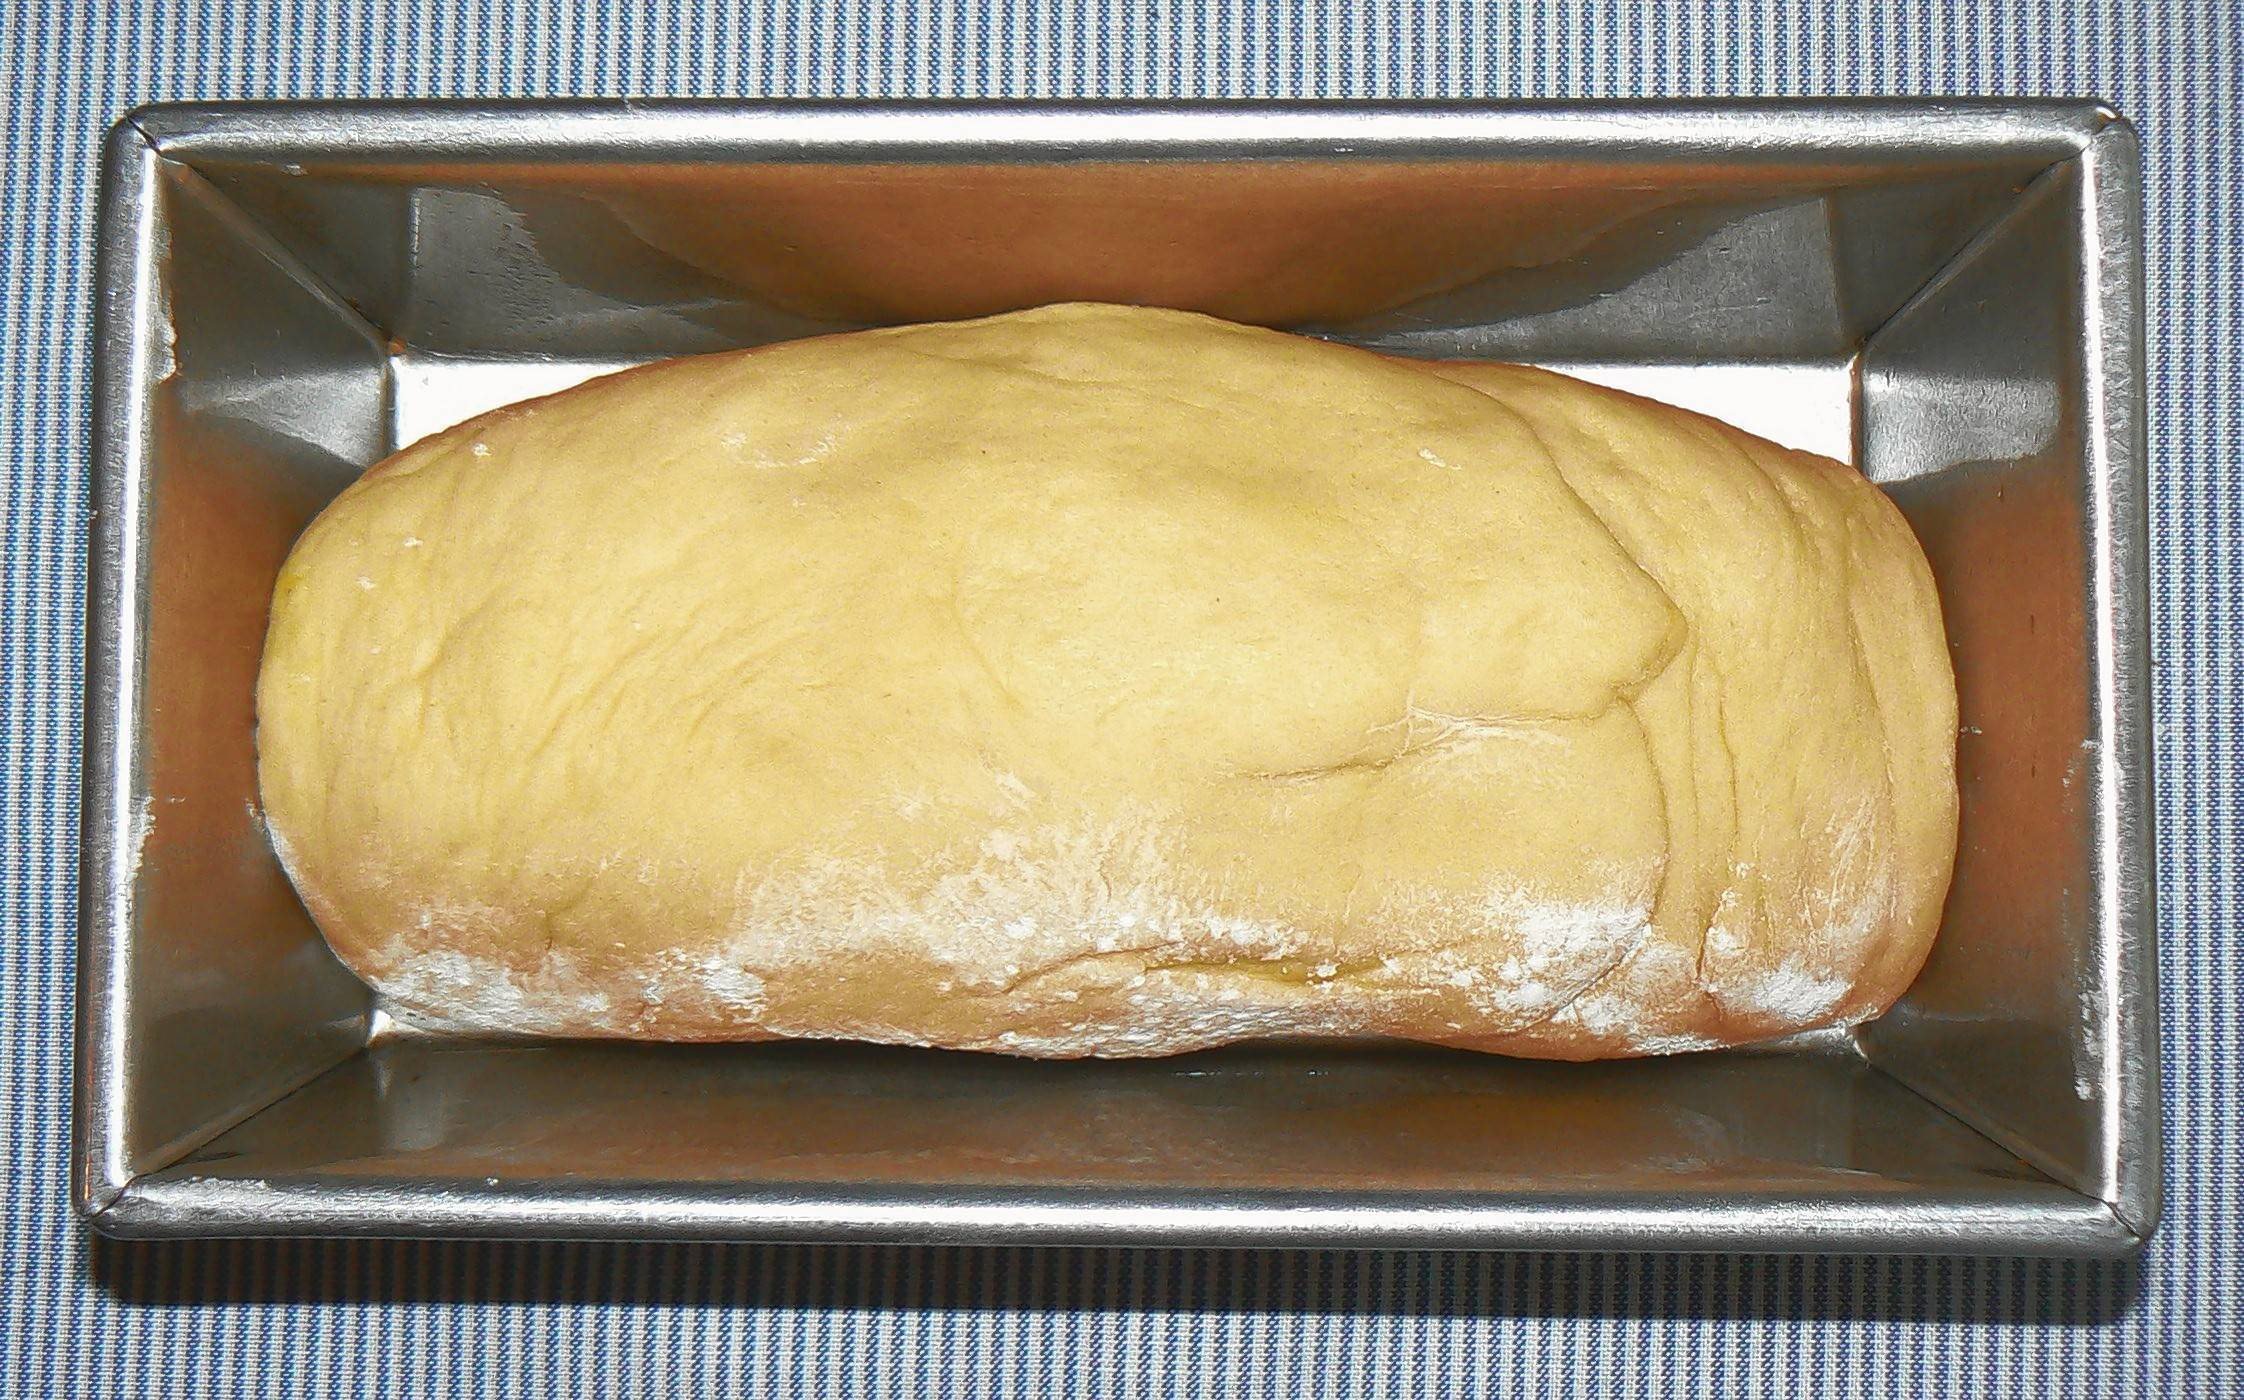 After the bread rises, briefly knead and let it rise for the second time.